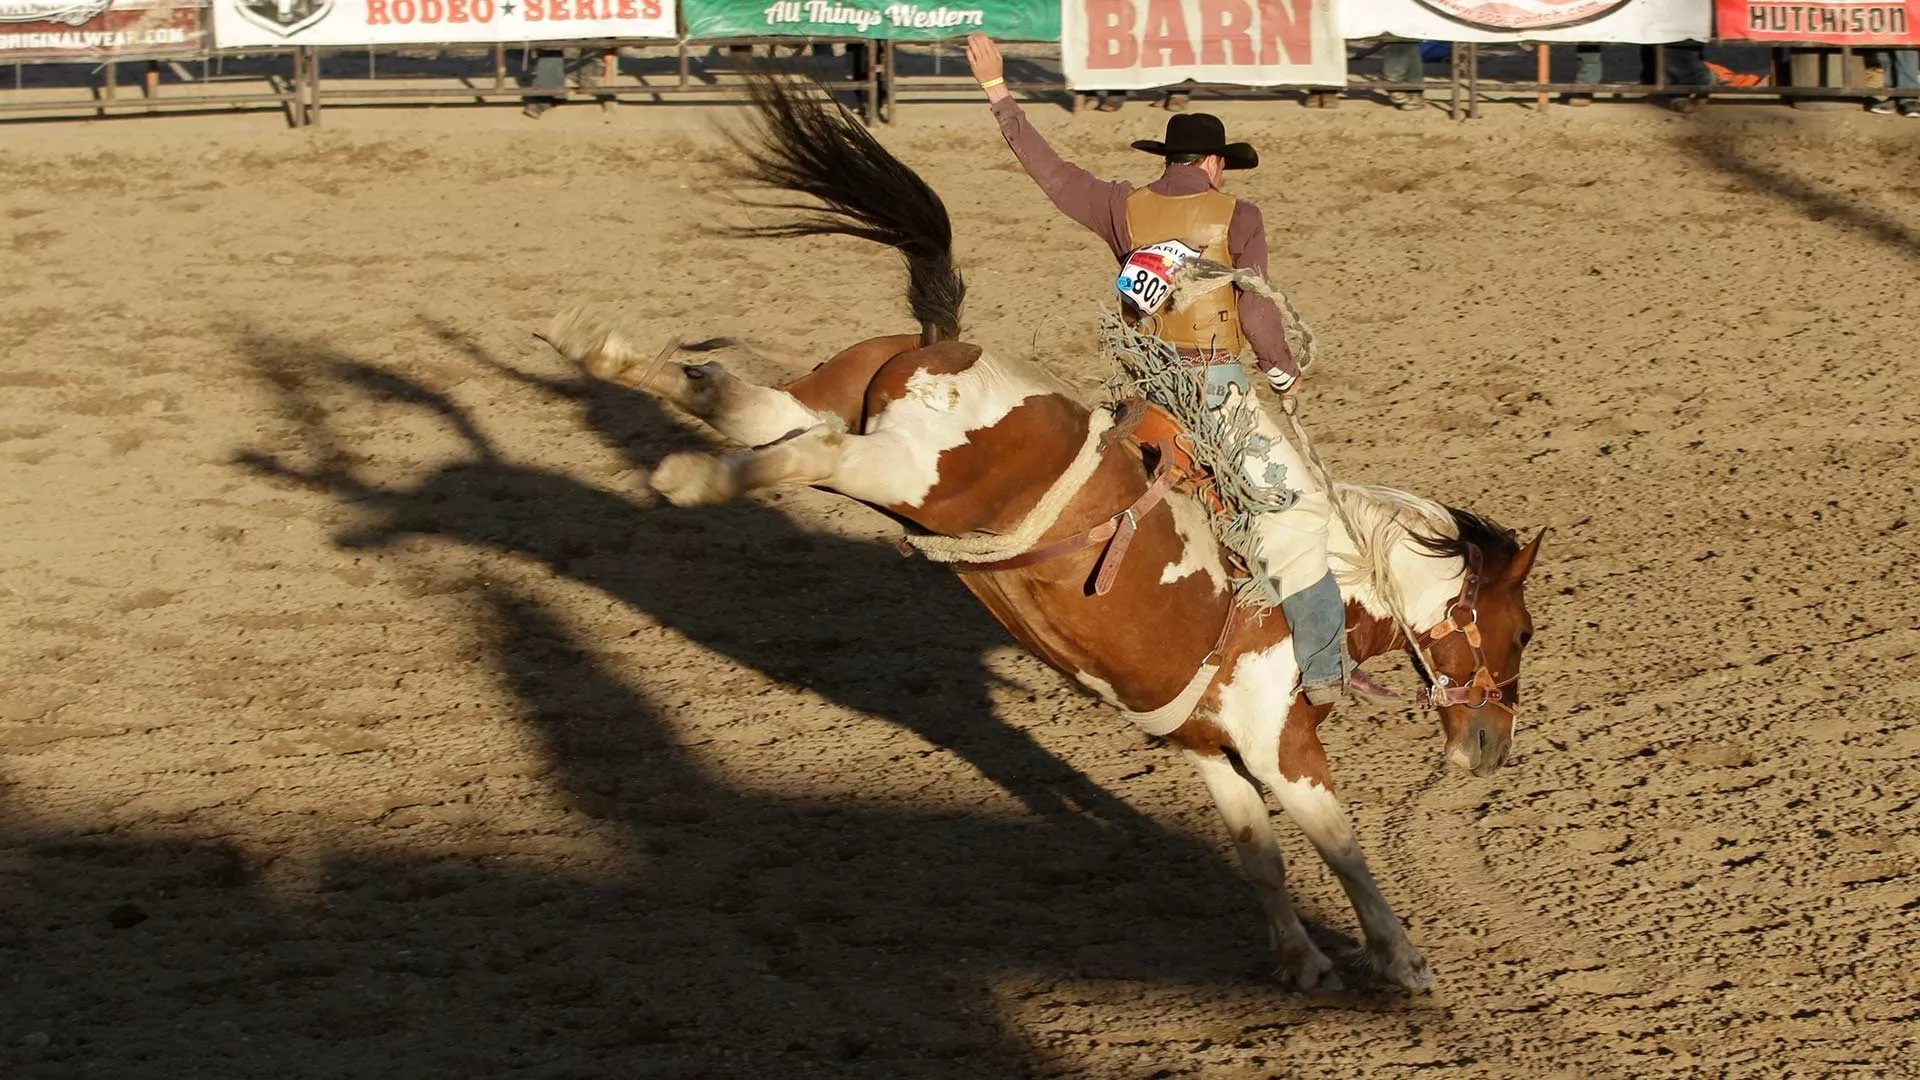 1920x1080 Best images of Rodeo Images of Rodeo ...